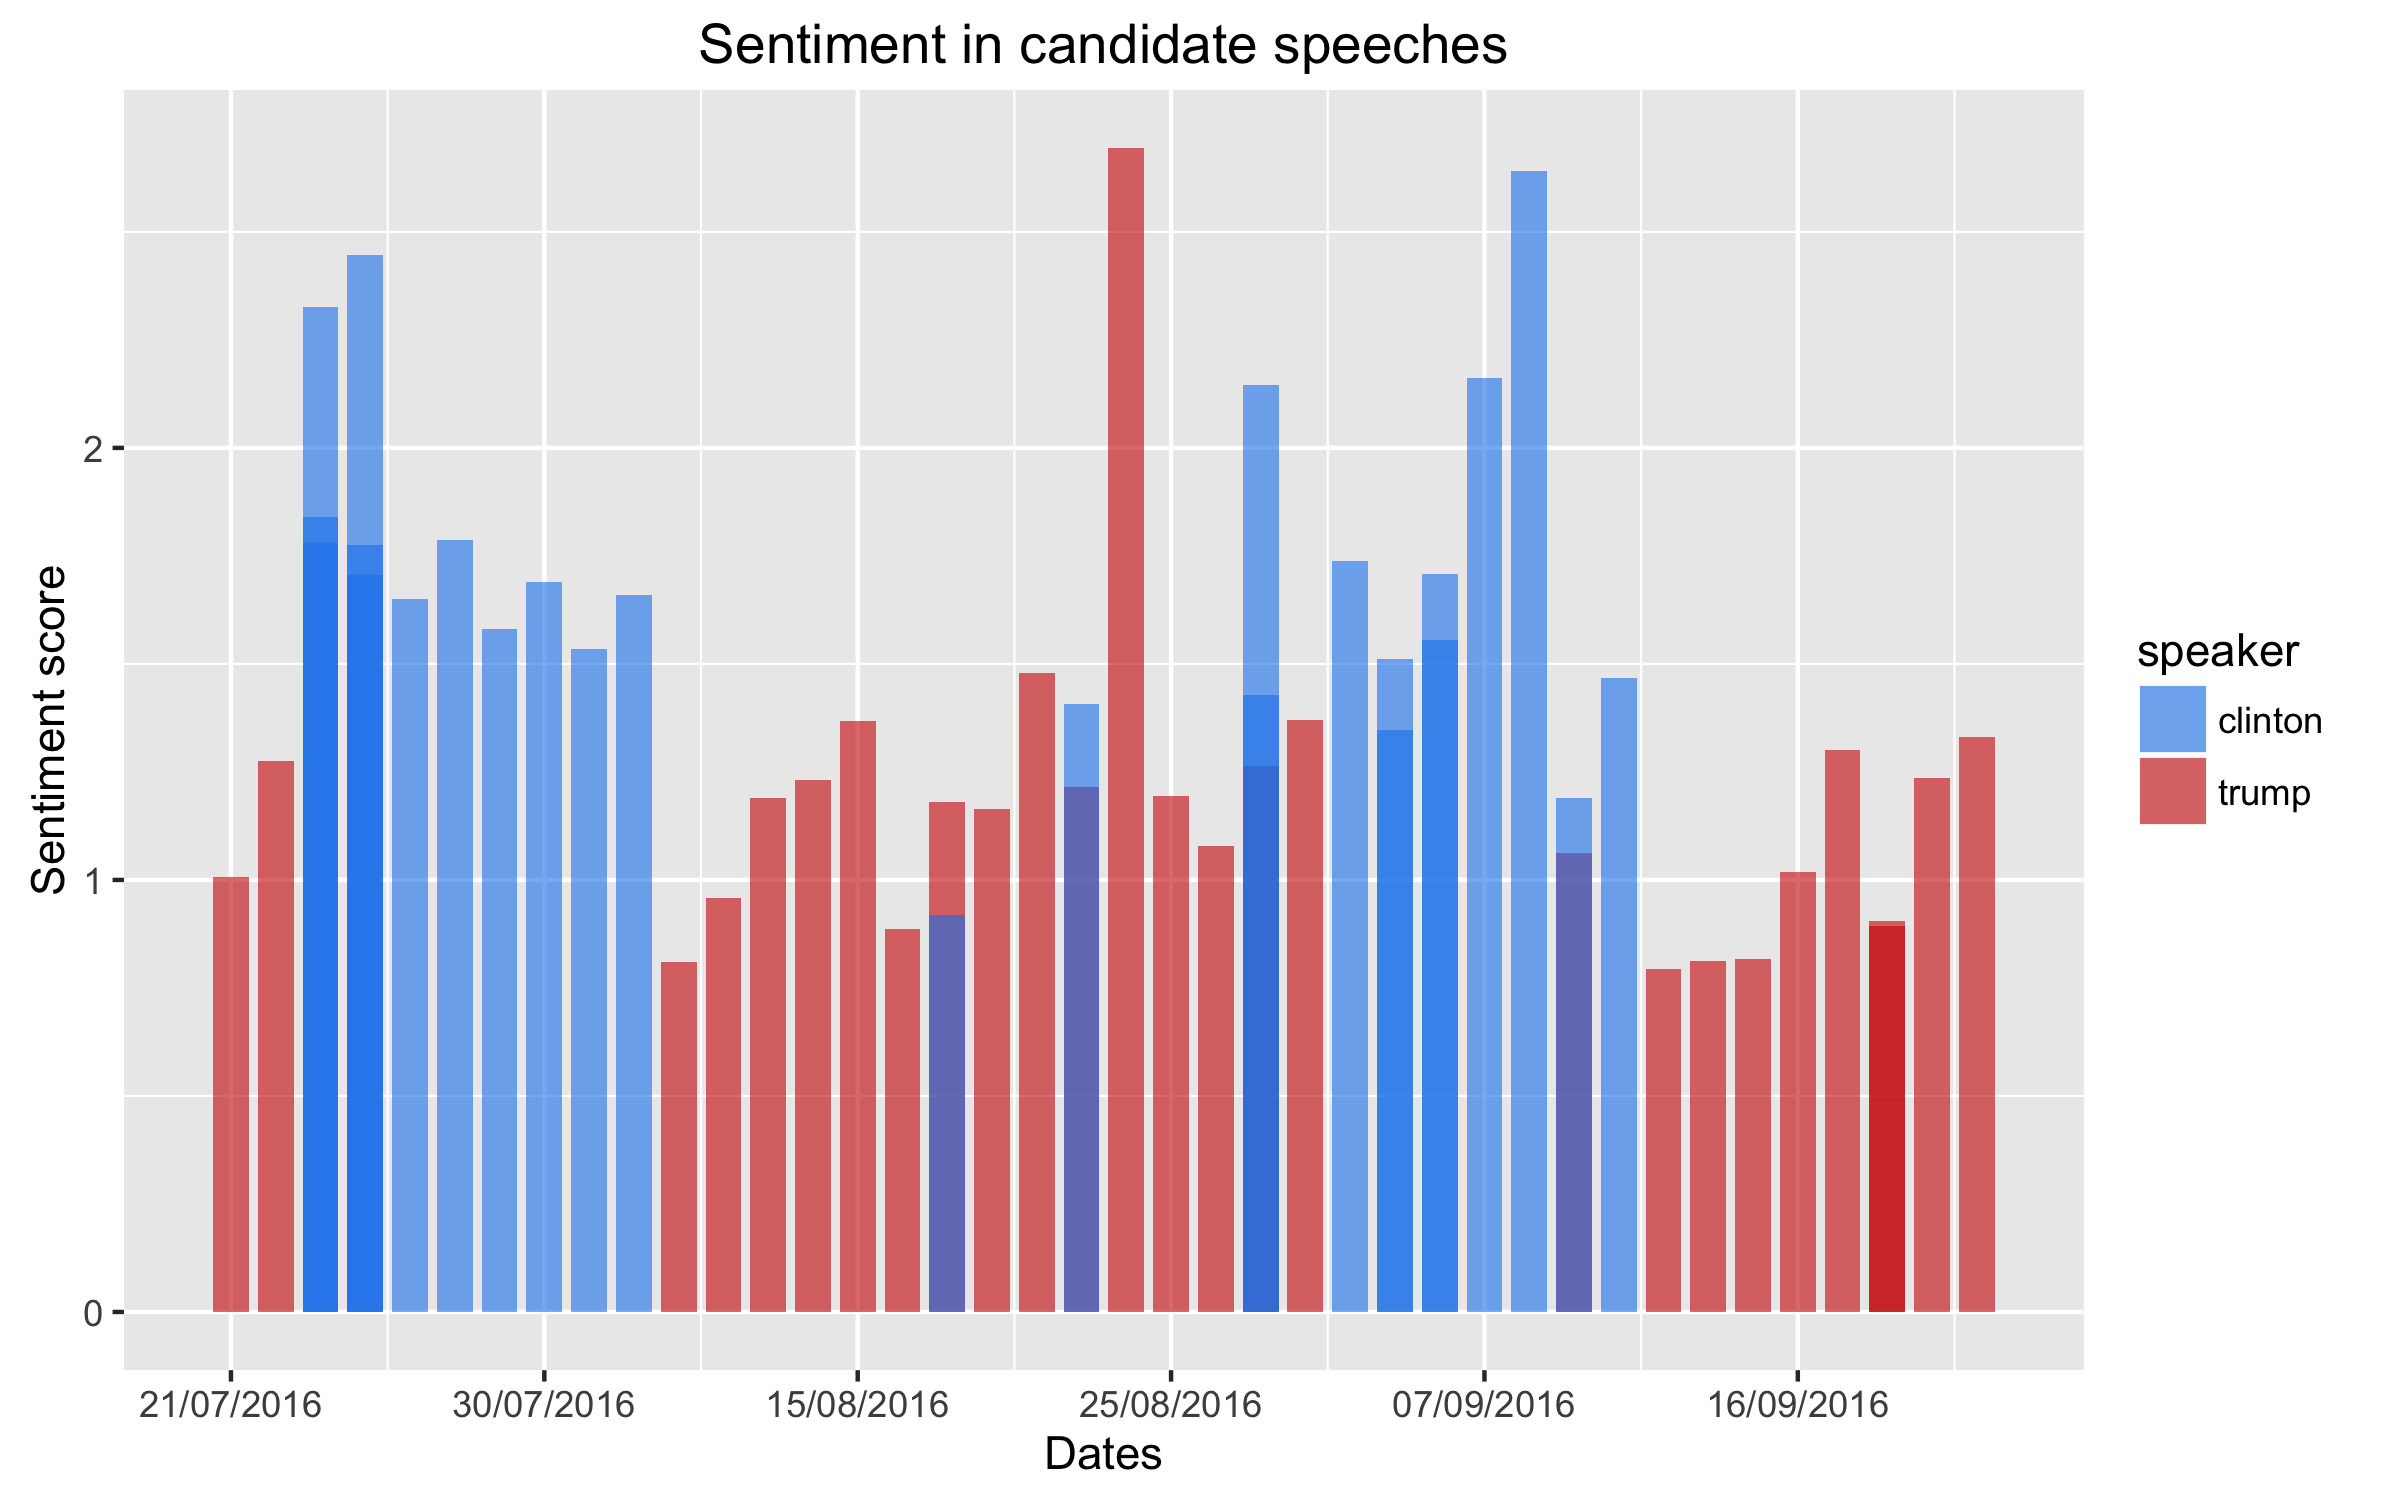 Figure 1 Sentiment in candidate speeches